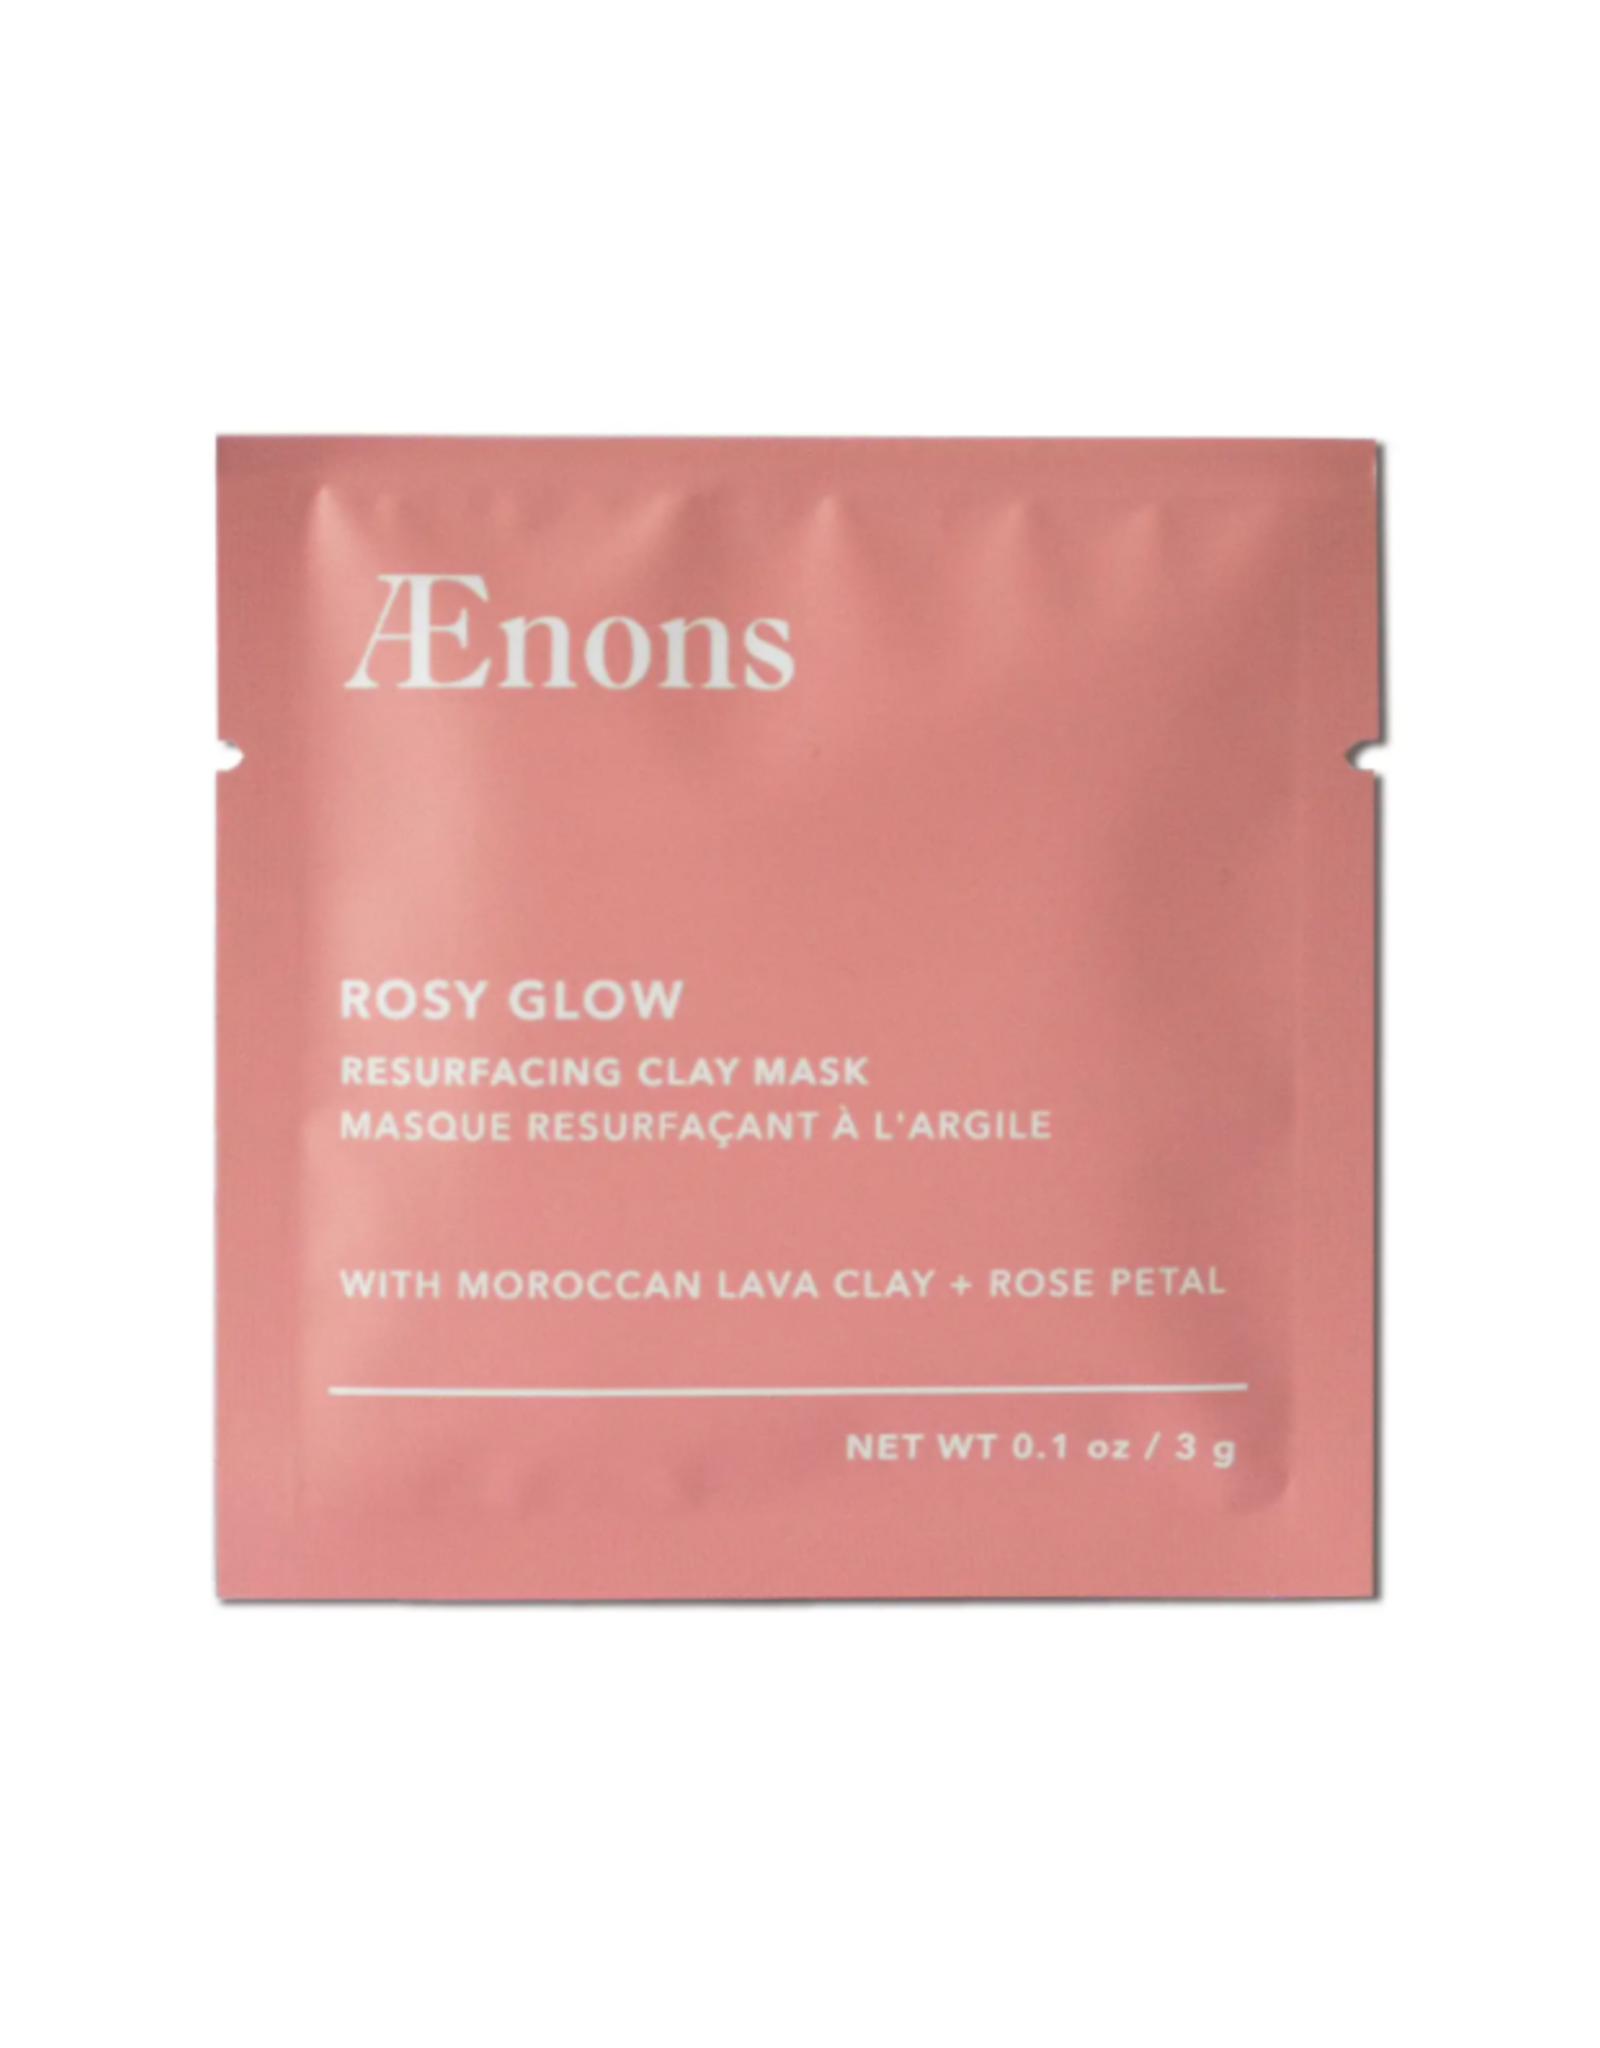 Rosy Glow Resurfacing Clay Mask Individual Packet